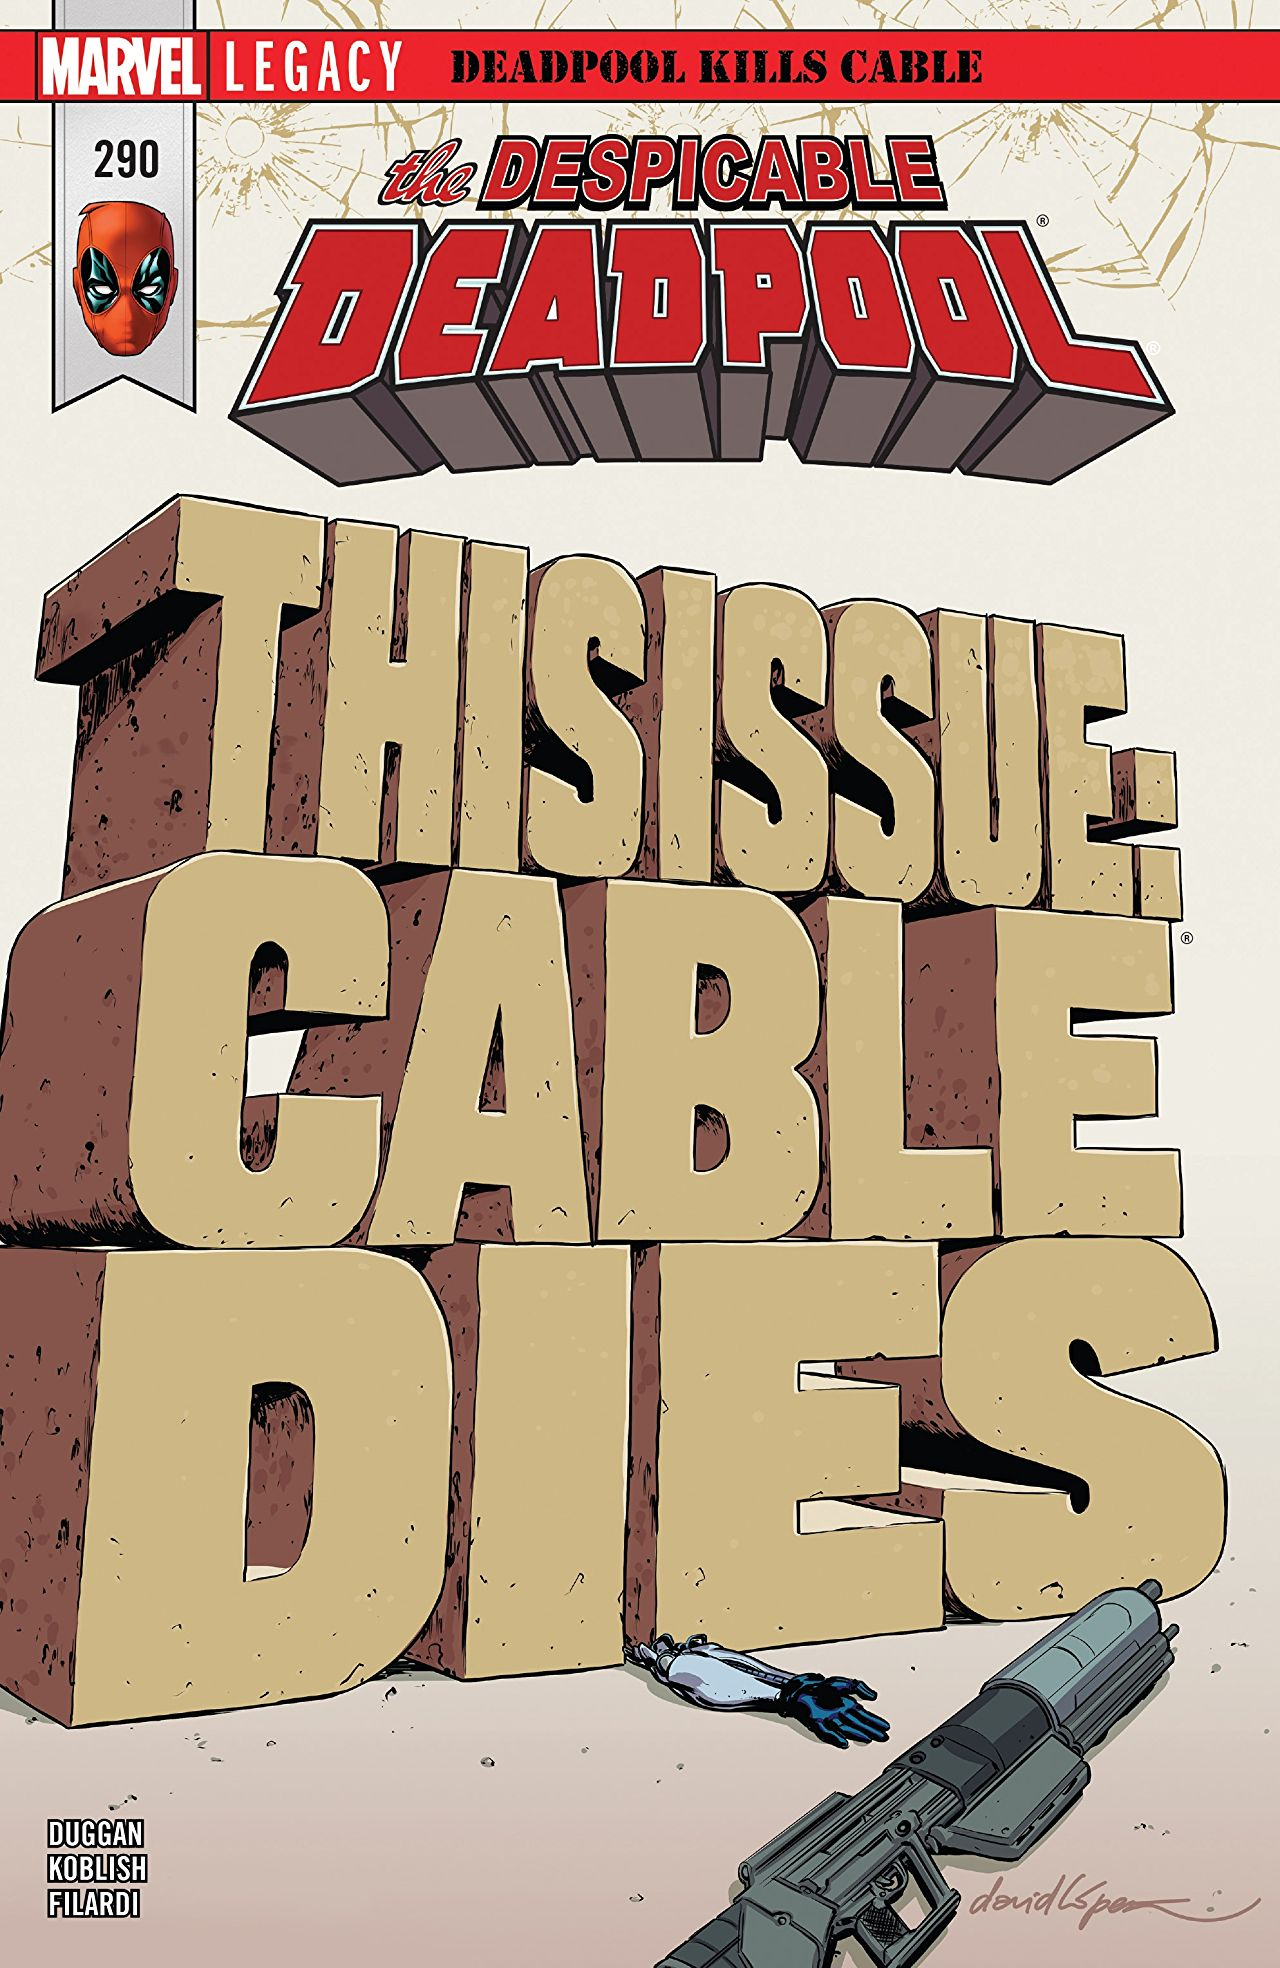 Despicable Deadpool #290 review: Yes, Deadpool kills Cable